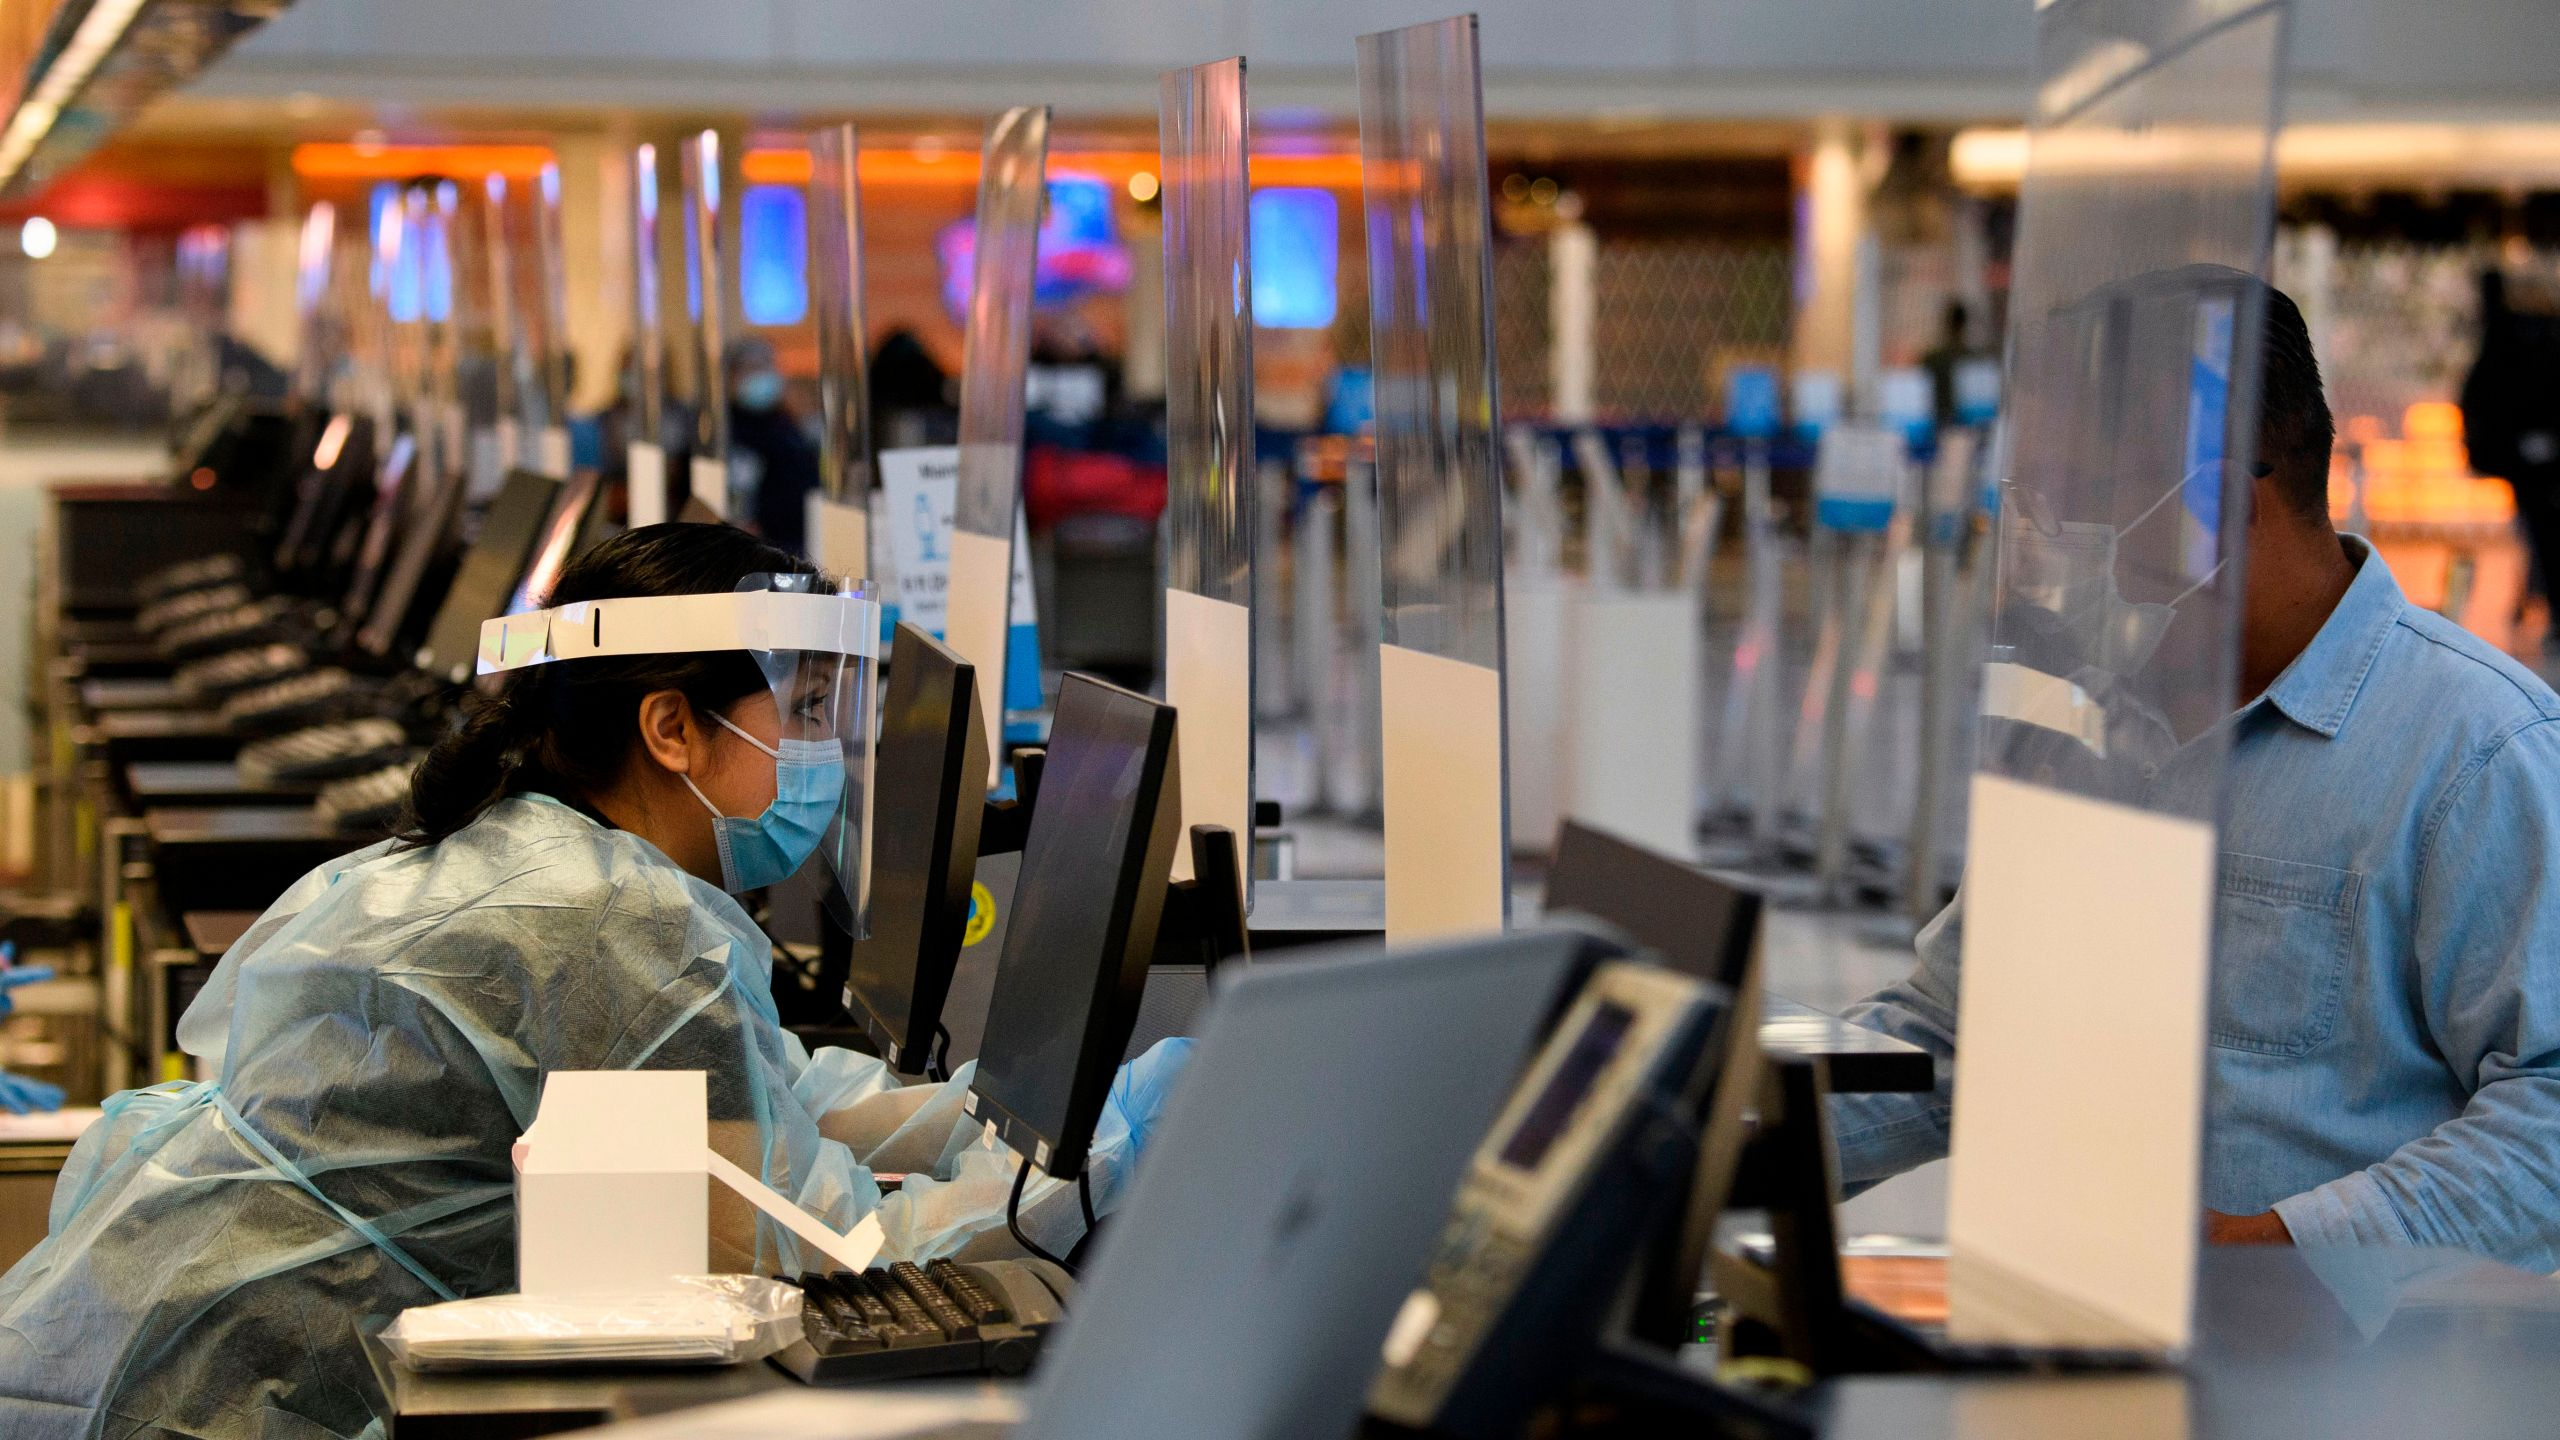 A staff member wears personal protective equipment while talking with a traveler at an coronavirus testing location at the Tom Bradley International Terminal at LAX on Nov. 18, 2020.(Patrick FALLON/AFP via Getty Images)